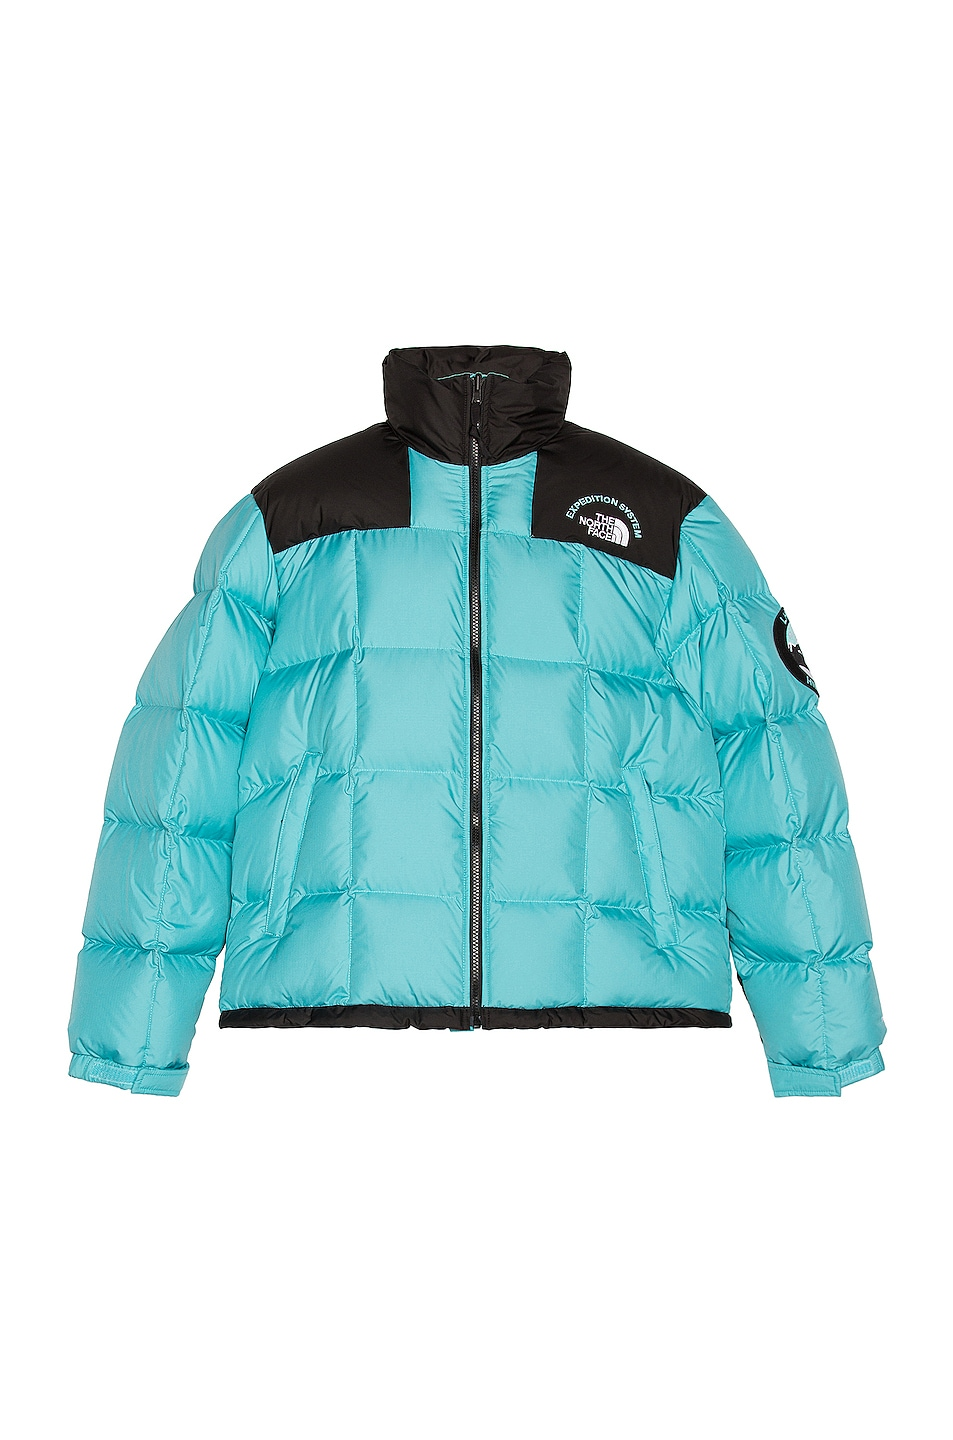 Image 1 of The North Face Black Lhotse Expedition Parka in Transantarctic Blue